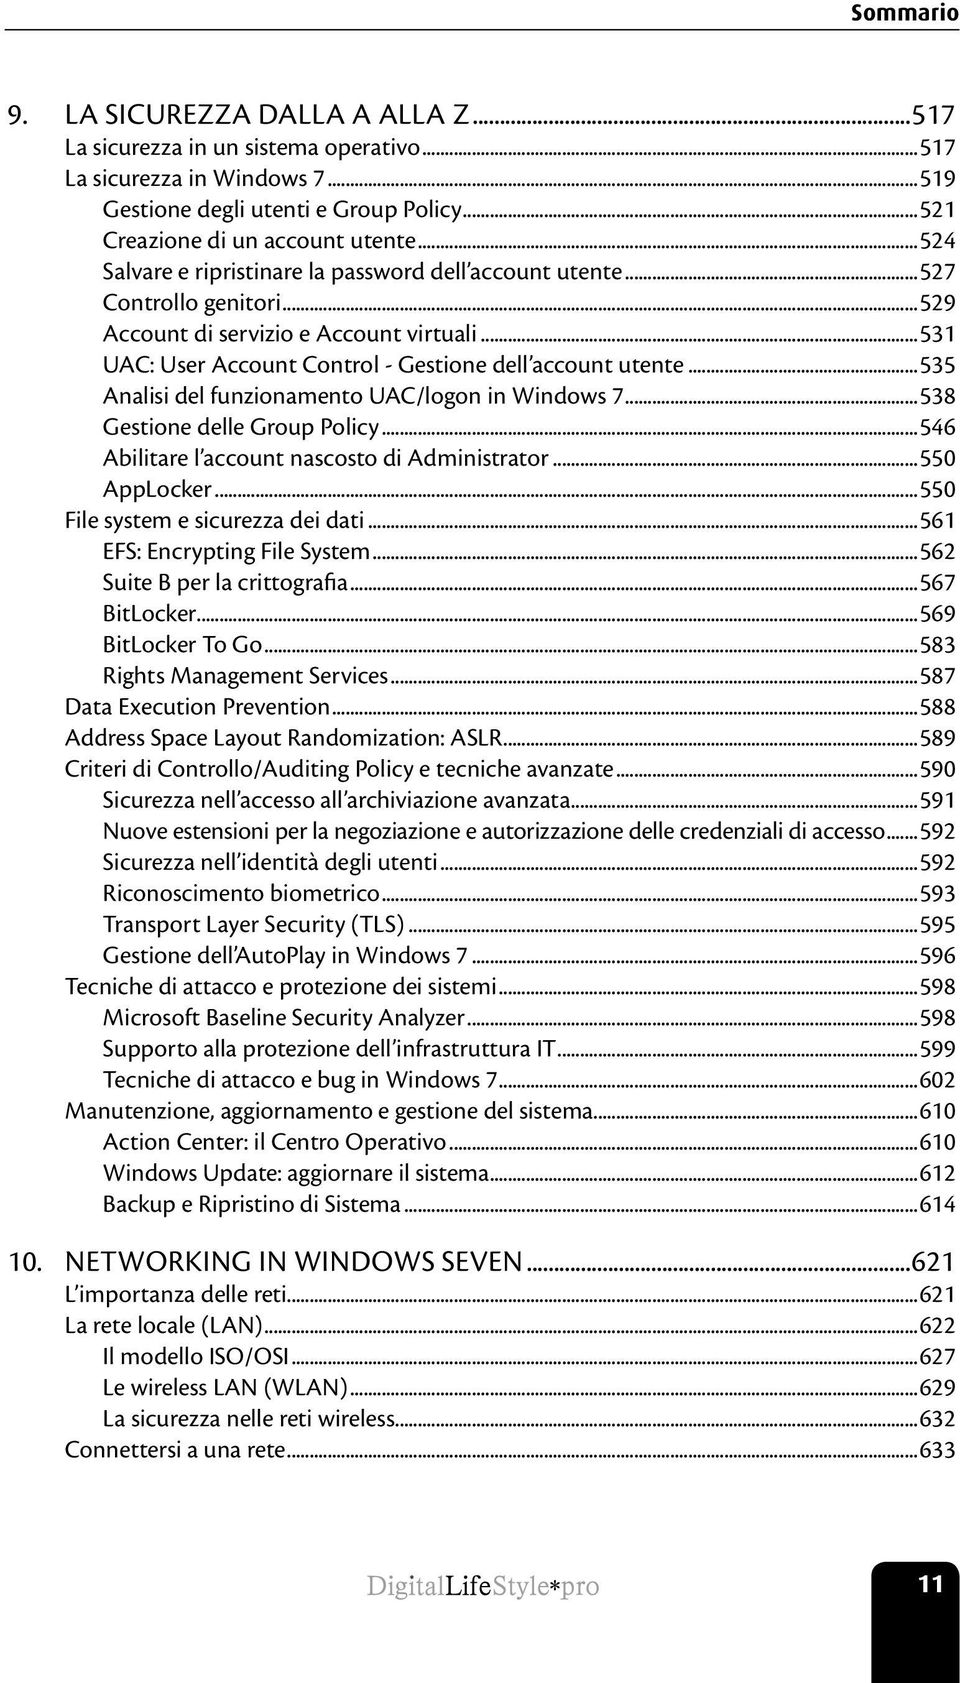 ..535 Analisi del funzionamento UAC/logon in Windows 7...538 Gestione delle Group Policy...546 Abilitare l account nascosto di Administrator...550 AppLocker...550 File system e sicurezza dei dati.